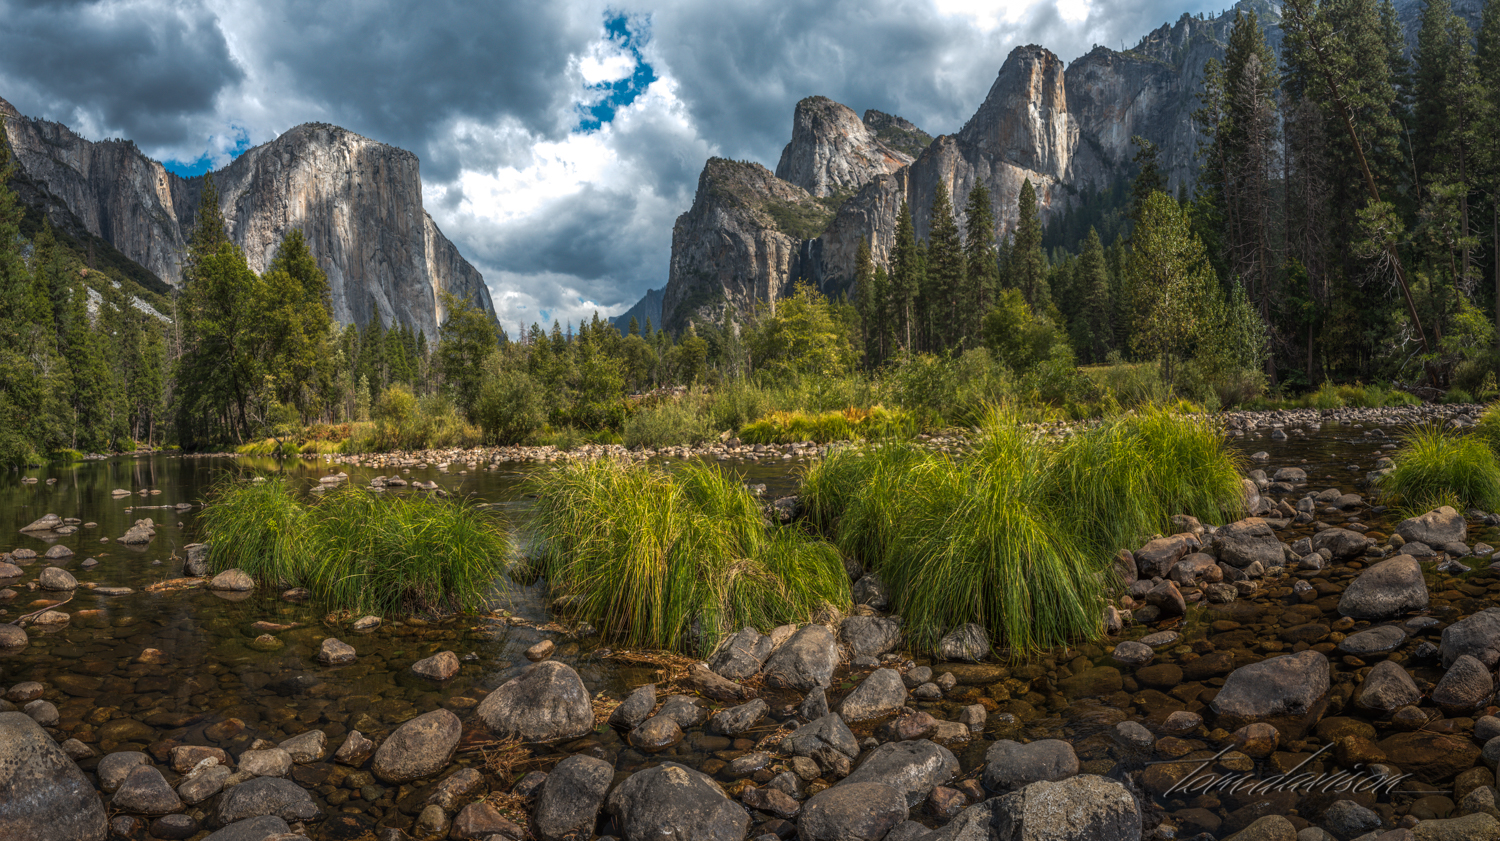 Valley in Yosemite National Park.